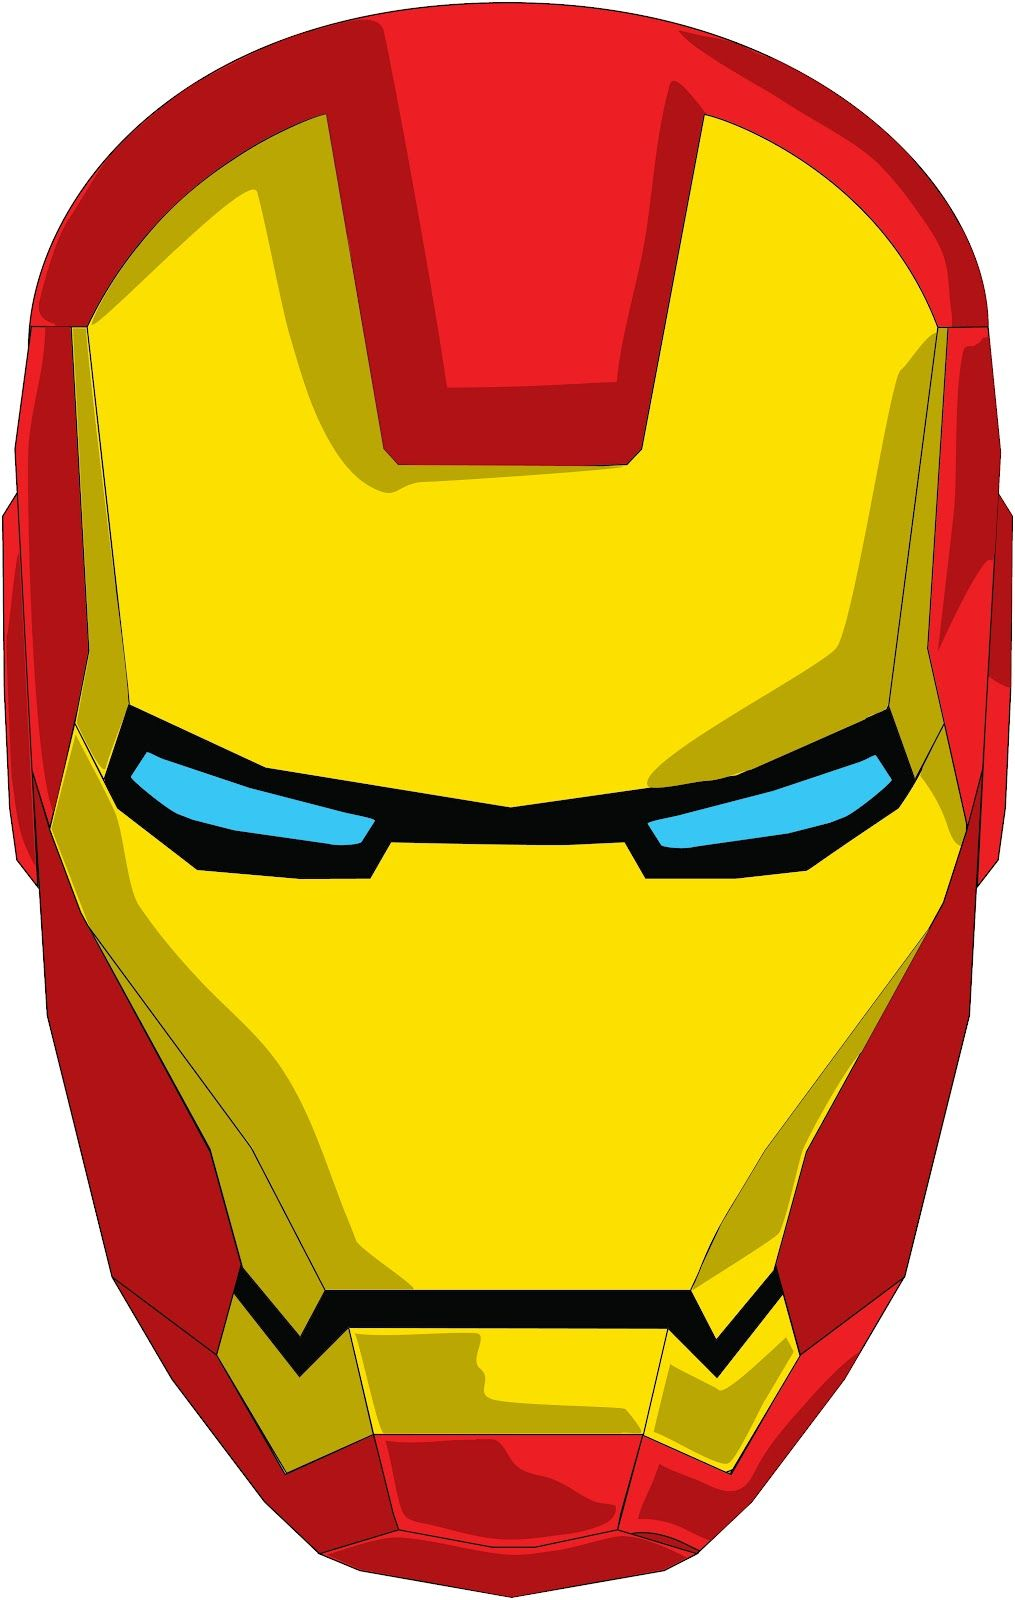 Superheroes clipart ironman symbol.